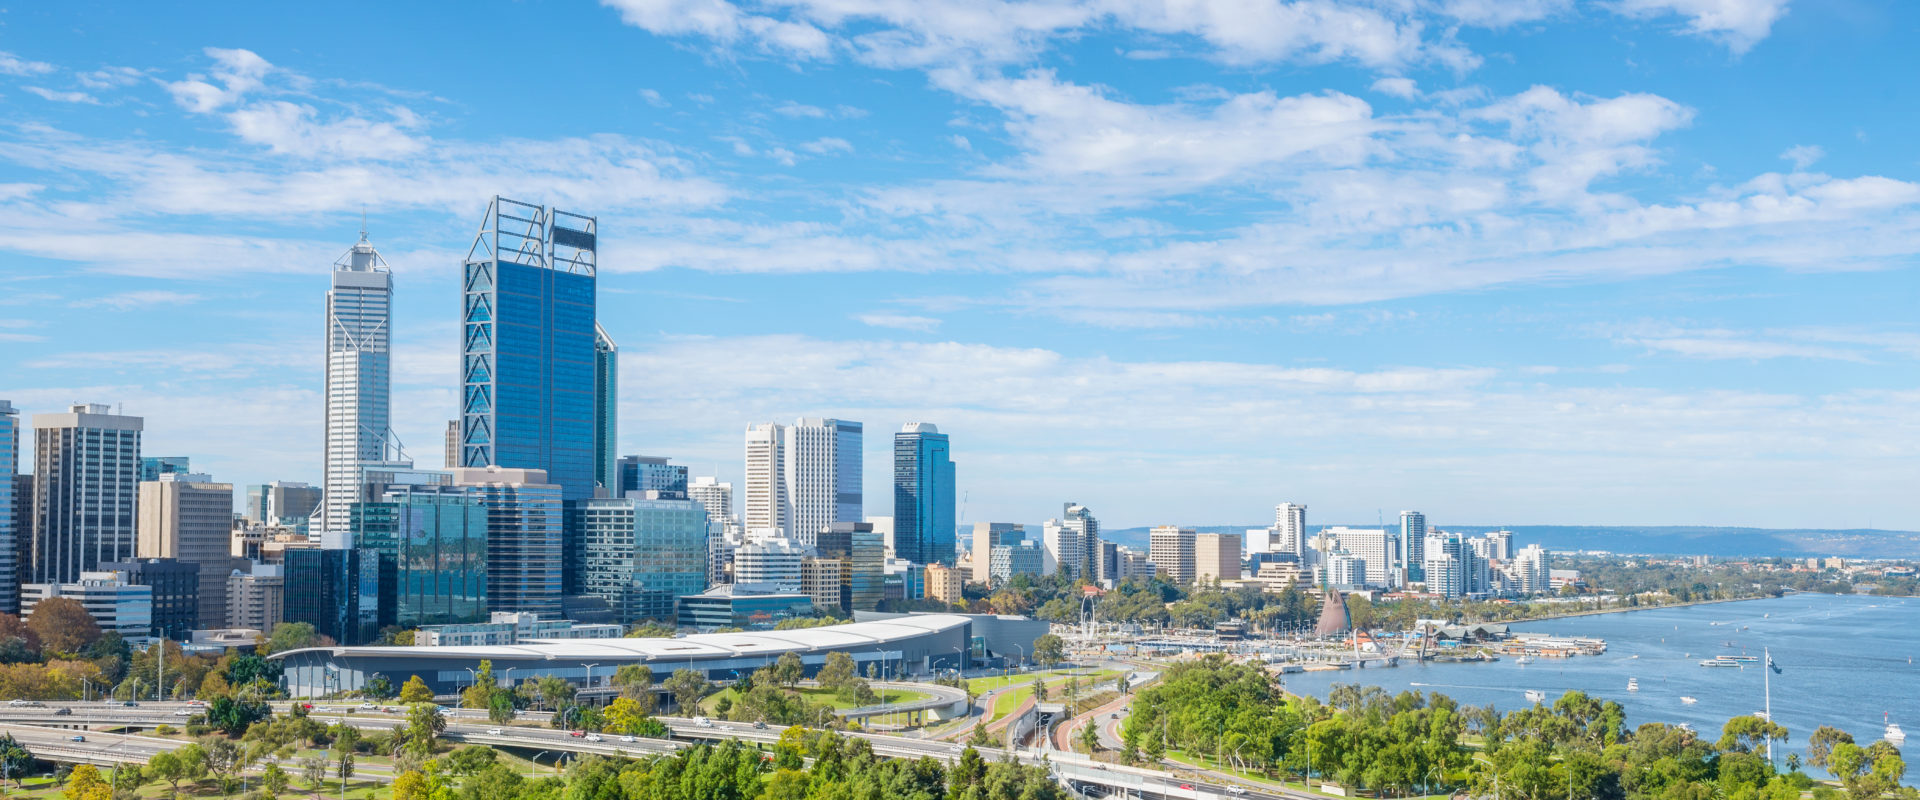 Stanton Chase expands into Western Australia with Perth office Cover Image